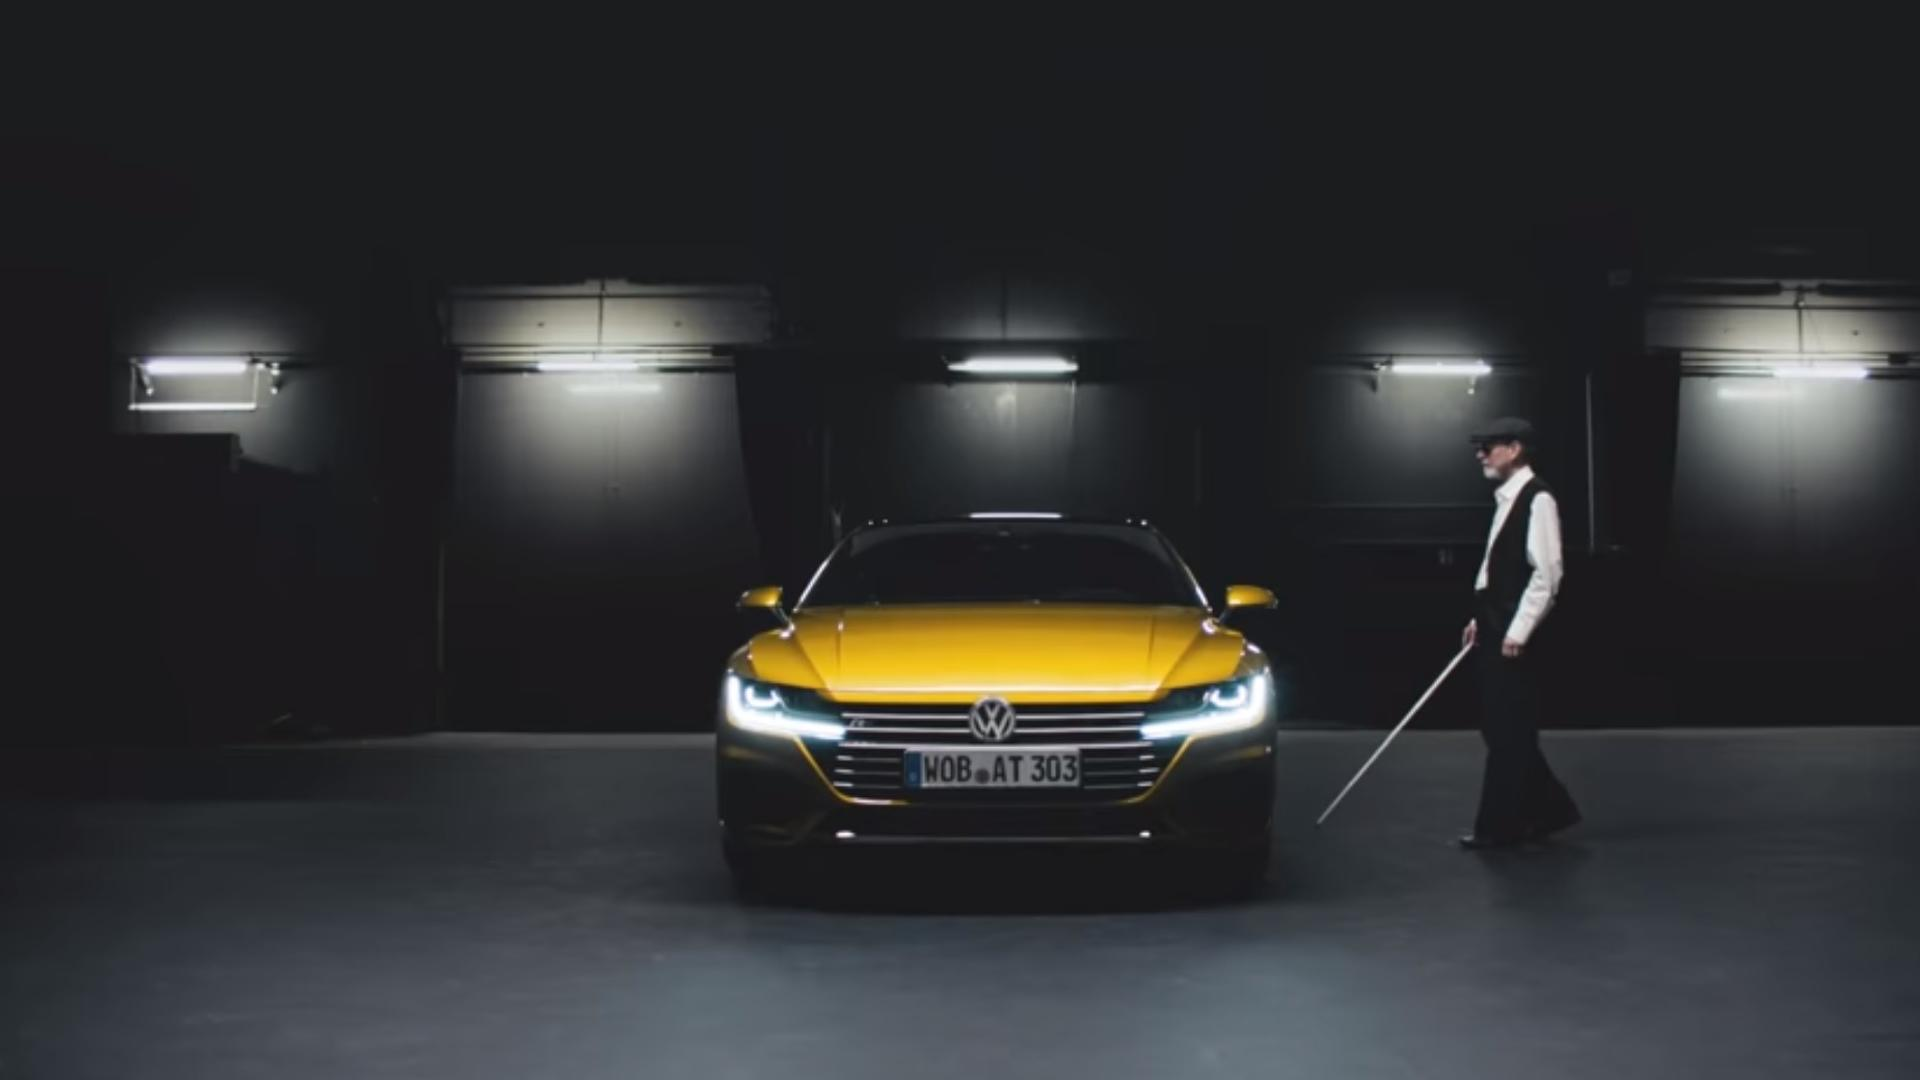 Volkswagen_Arteon_photoshoot_by_Pete_Eckert_10